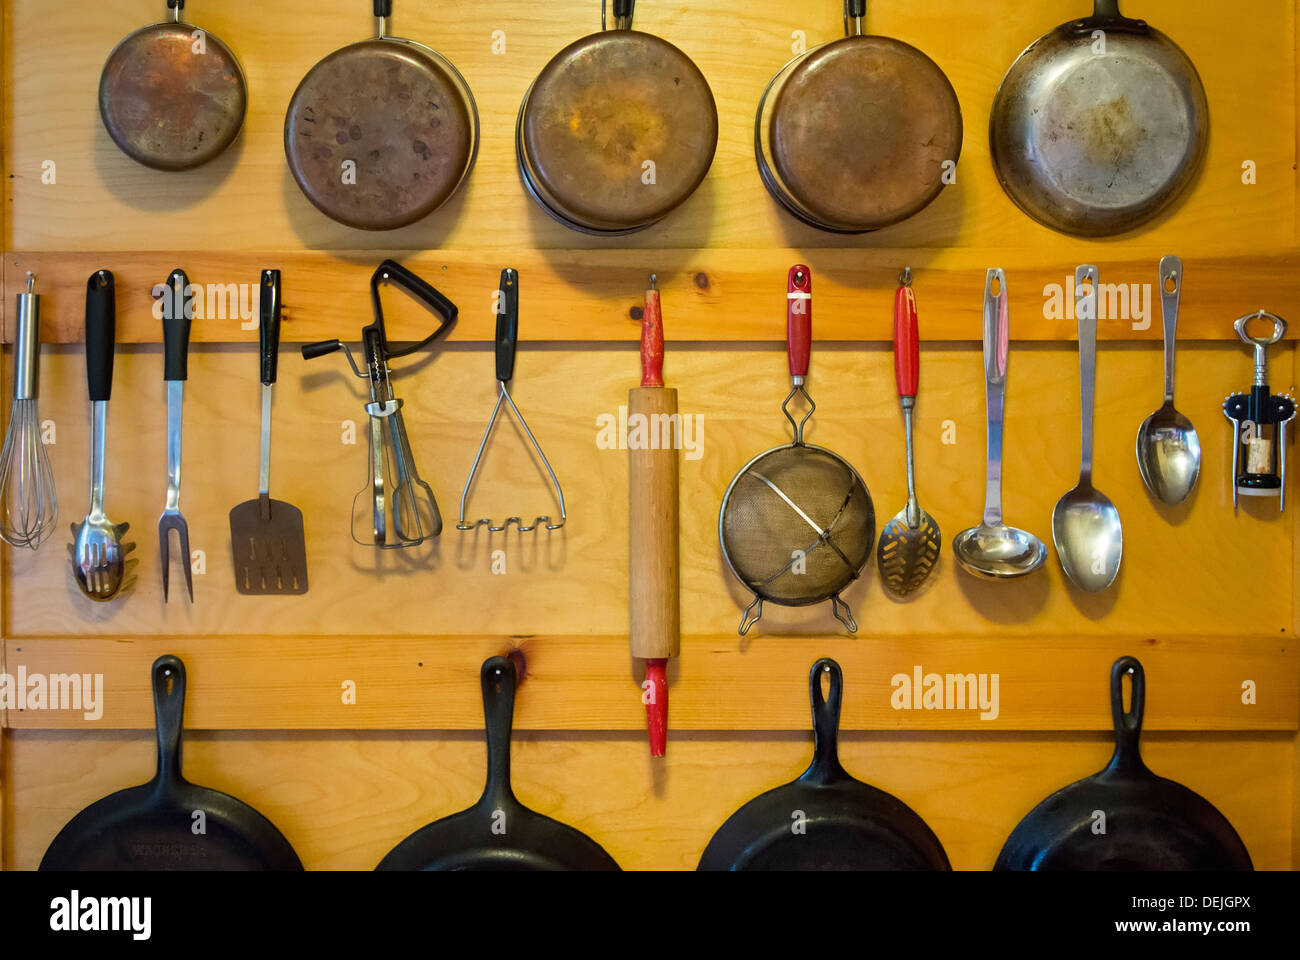 Bovina Center, New York - Pots and pans hanging on the wall of a cabin in the Catskill Mountains. - Stock Image